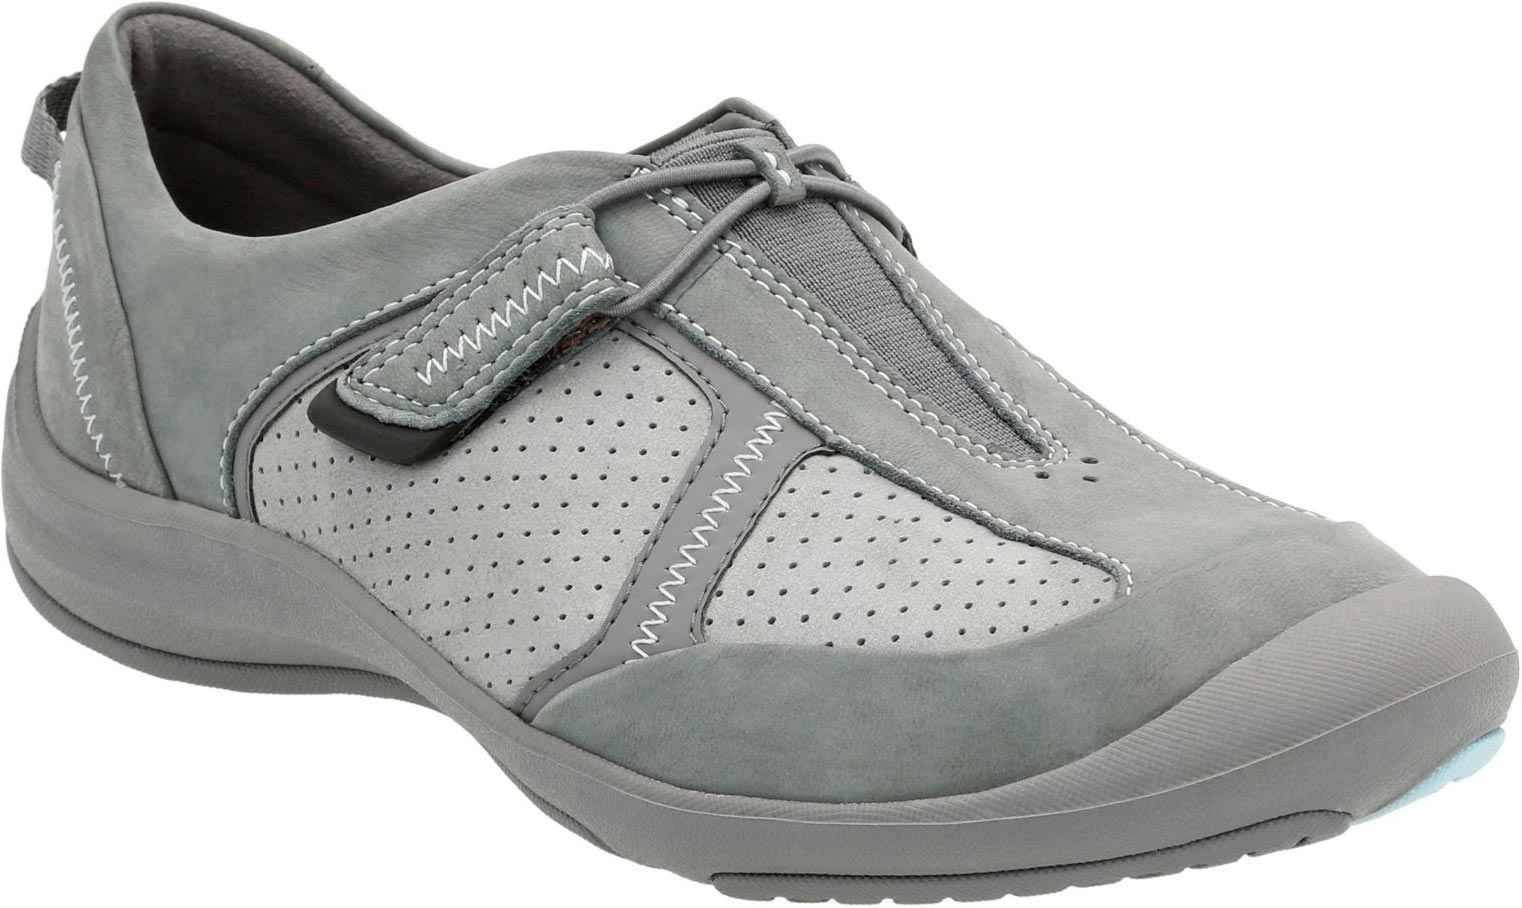 Asney Dames Fashion Slipon Sneaker Clarks wXiukPOTZ